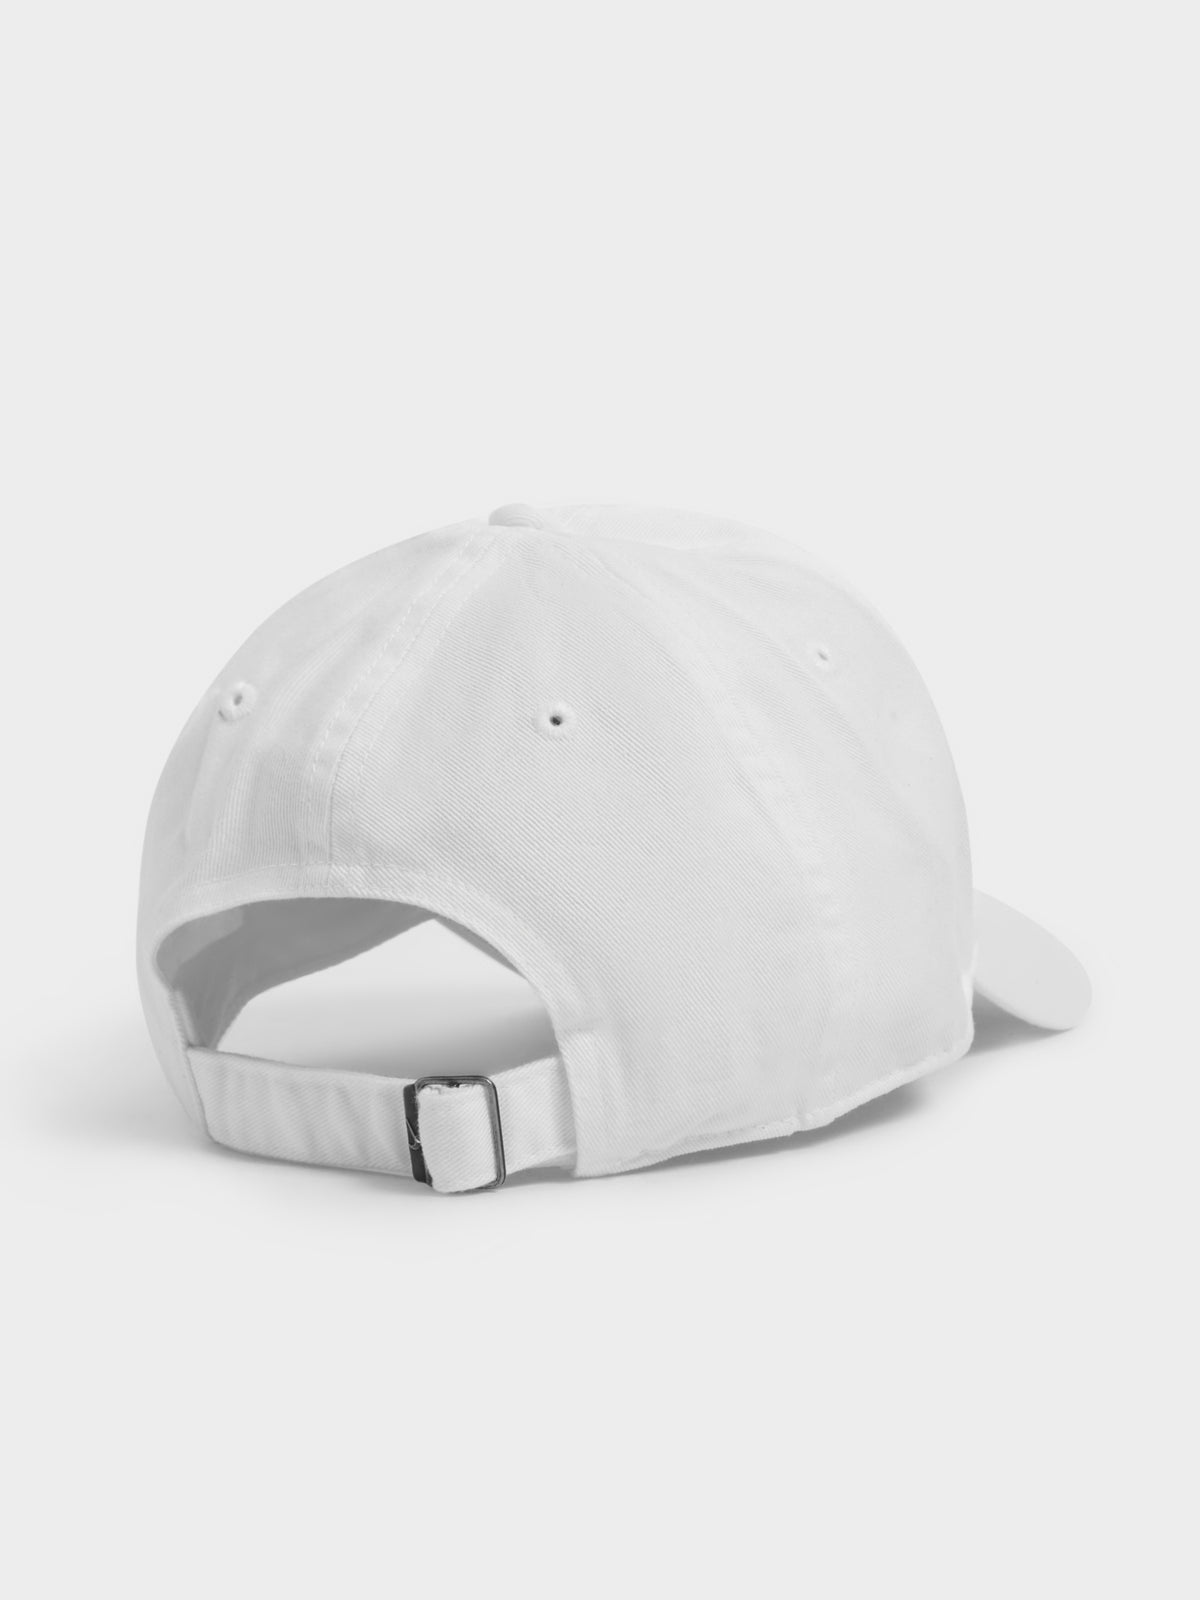 Heritage 86 Futura Cap in Washed White